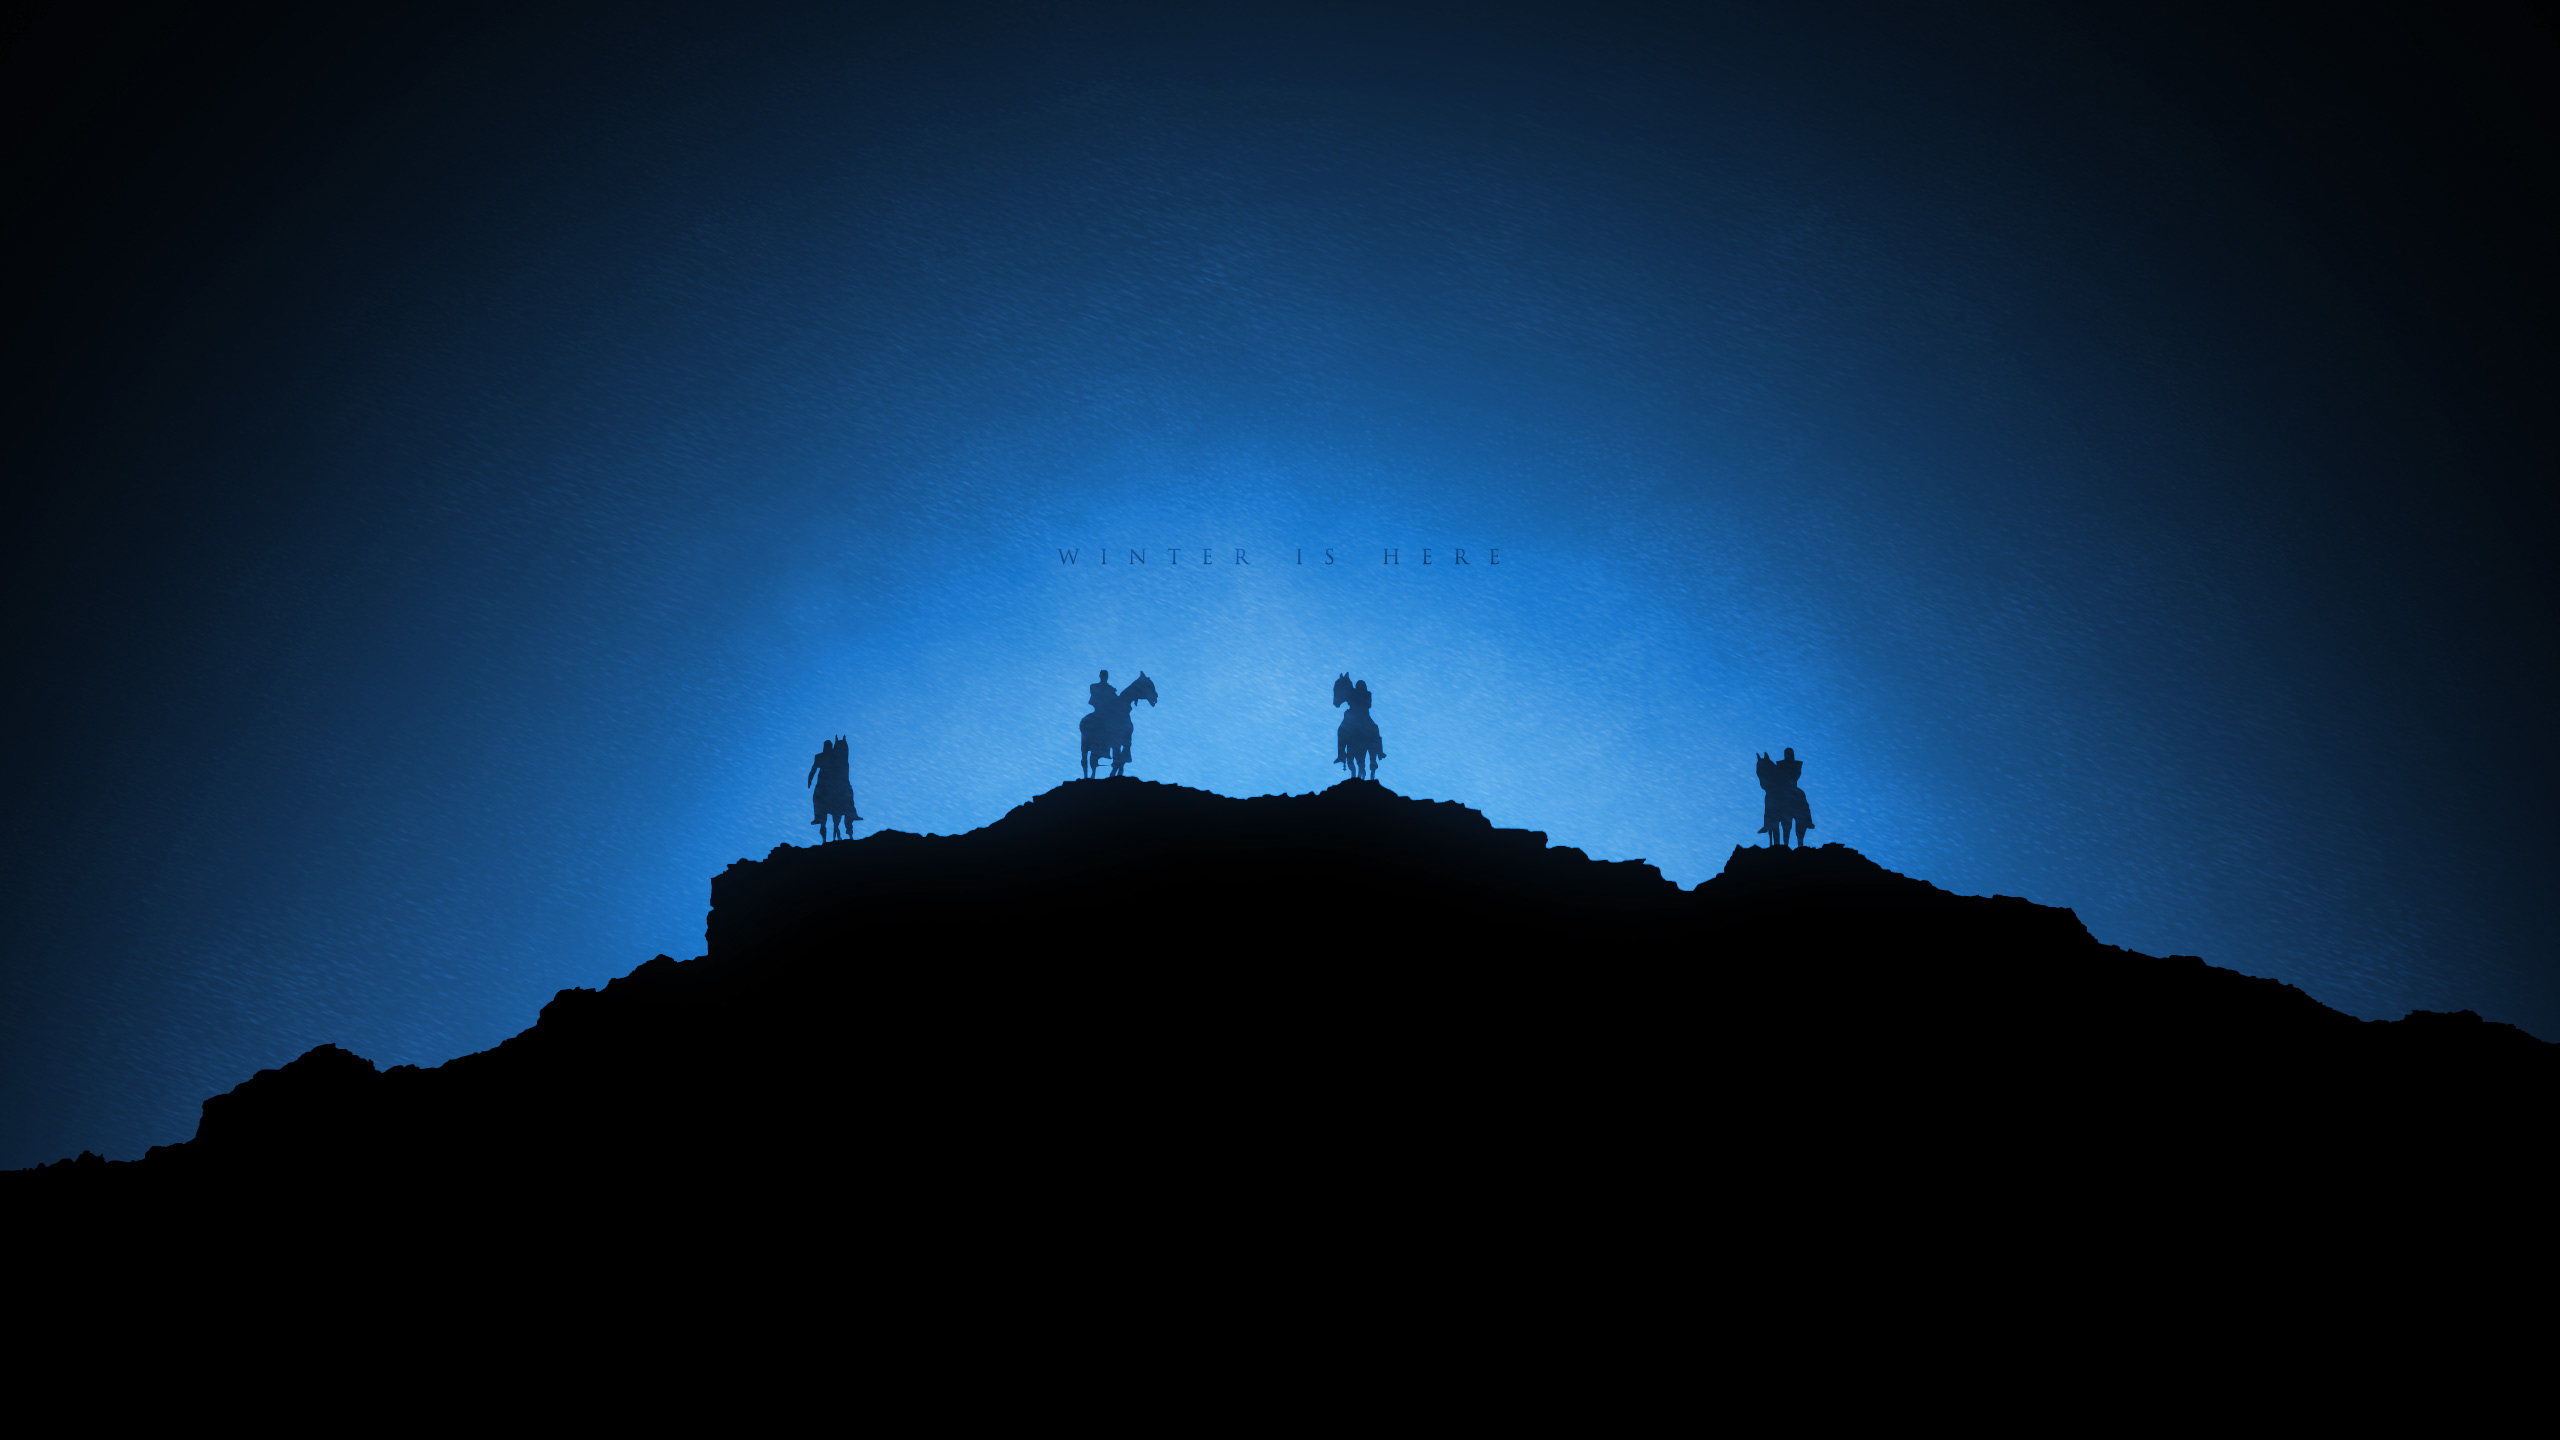 Game Of Thrones Minimalist Wallpaper: White Walkers Winter Is Here Game Of Thrones Minimalism